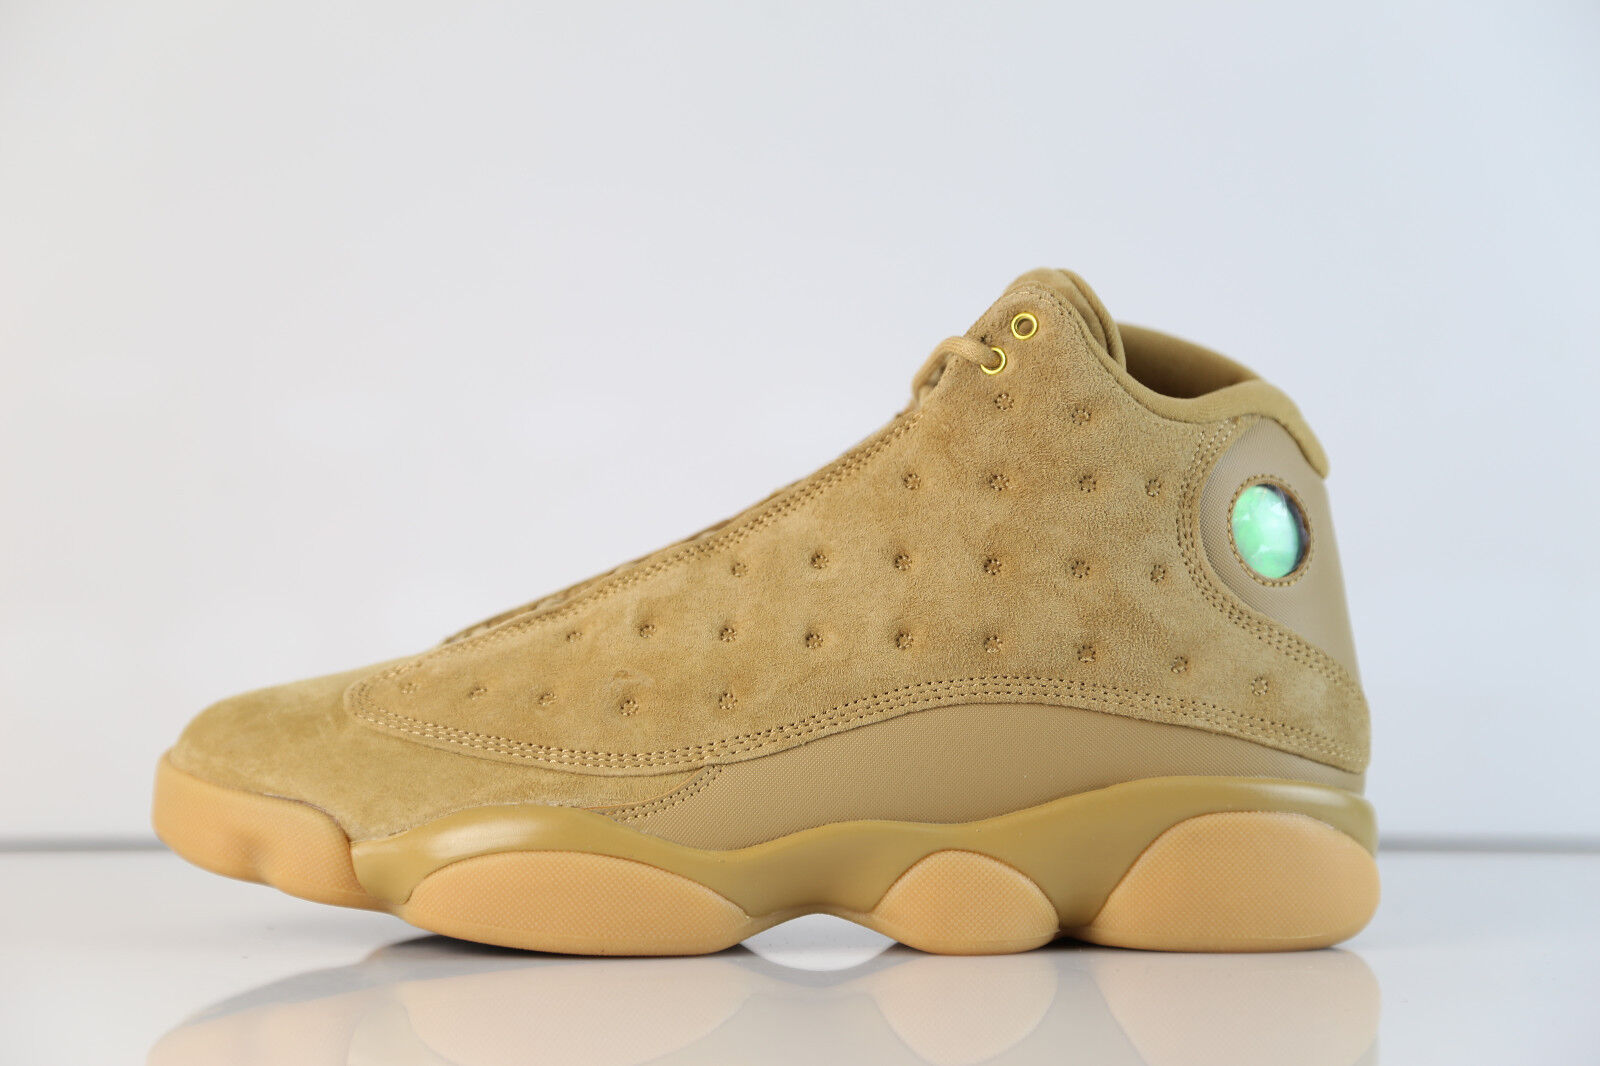 Nike Air Jordan Retro 13 Wheat Elemental gold Brown Gum 414571-705 7.5-15 xiii 3